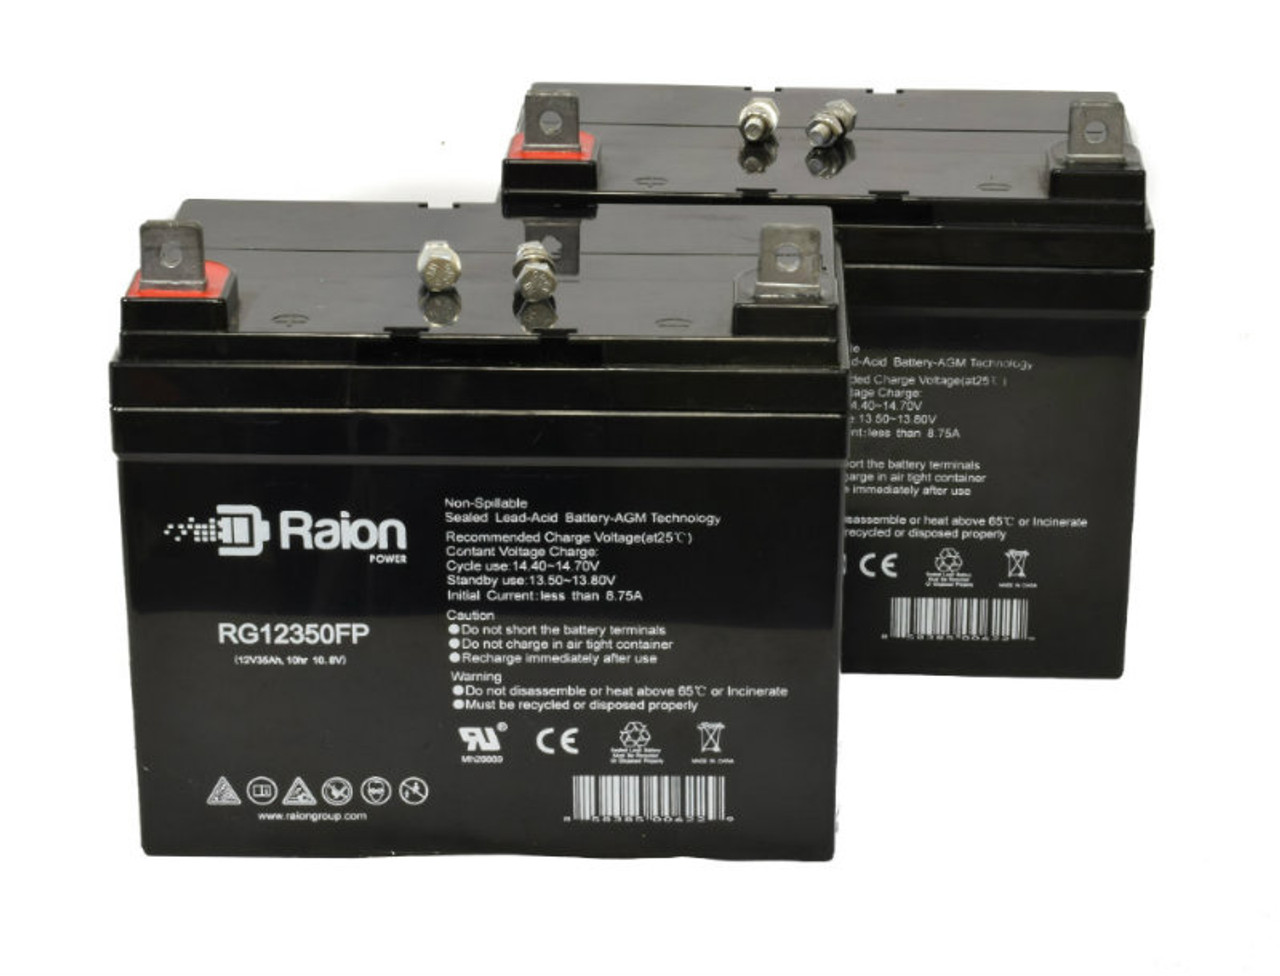 Raion Power RG12350FP Replacement Wheelchair Battery For Everest & Jennings Pacer (2 Pack)